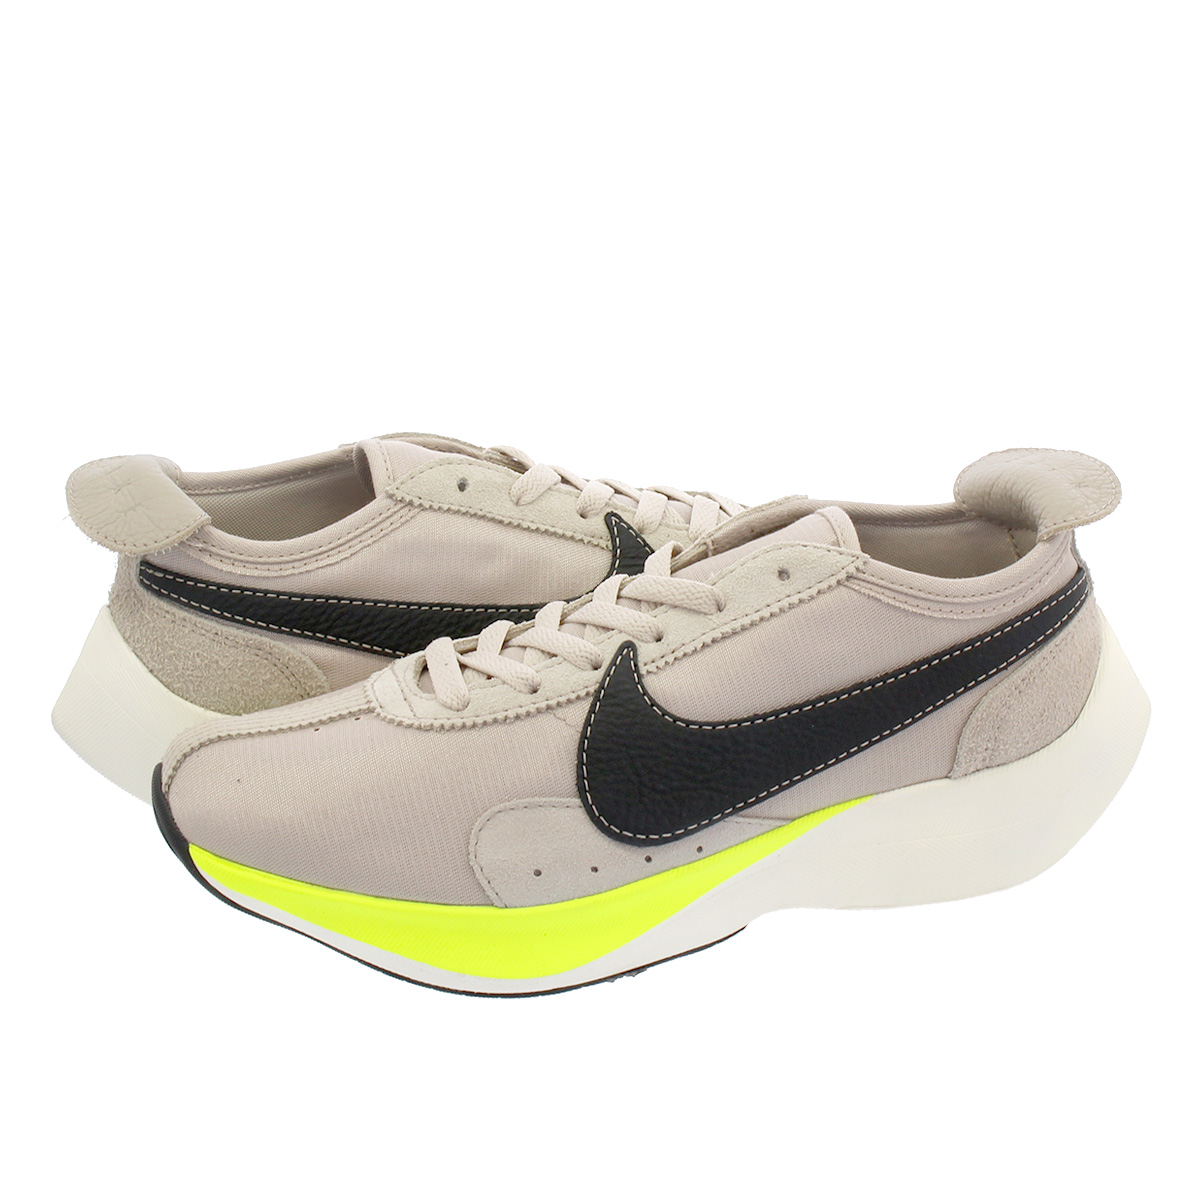 SELECT SHOP LOWTEX | Rakuten Global Market: NIKE MOON RACER Nike moon racer BLACK/SAIL/VOLT aq4121-200